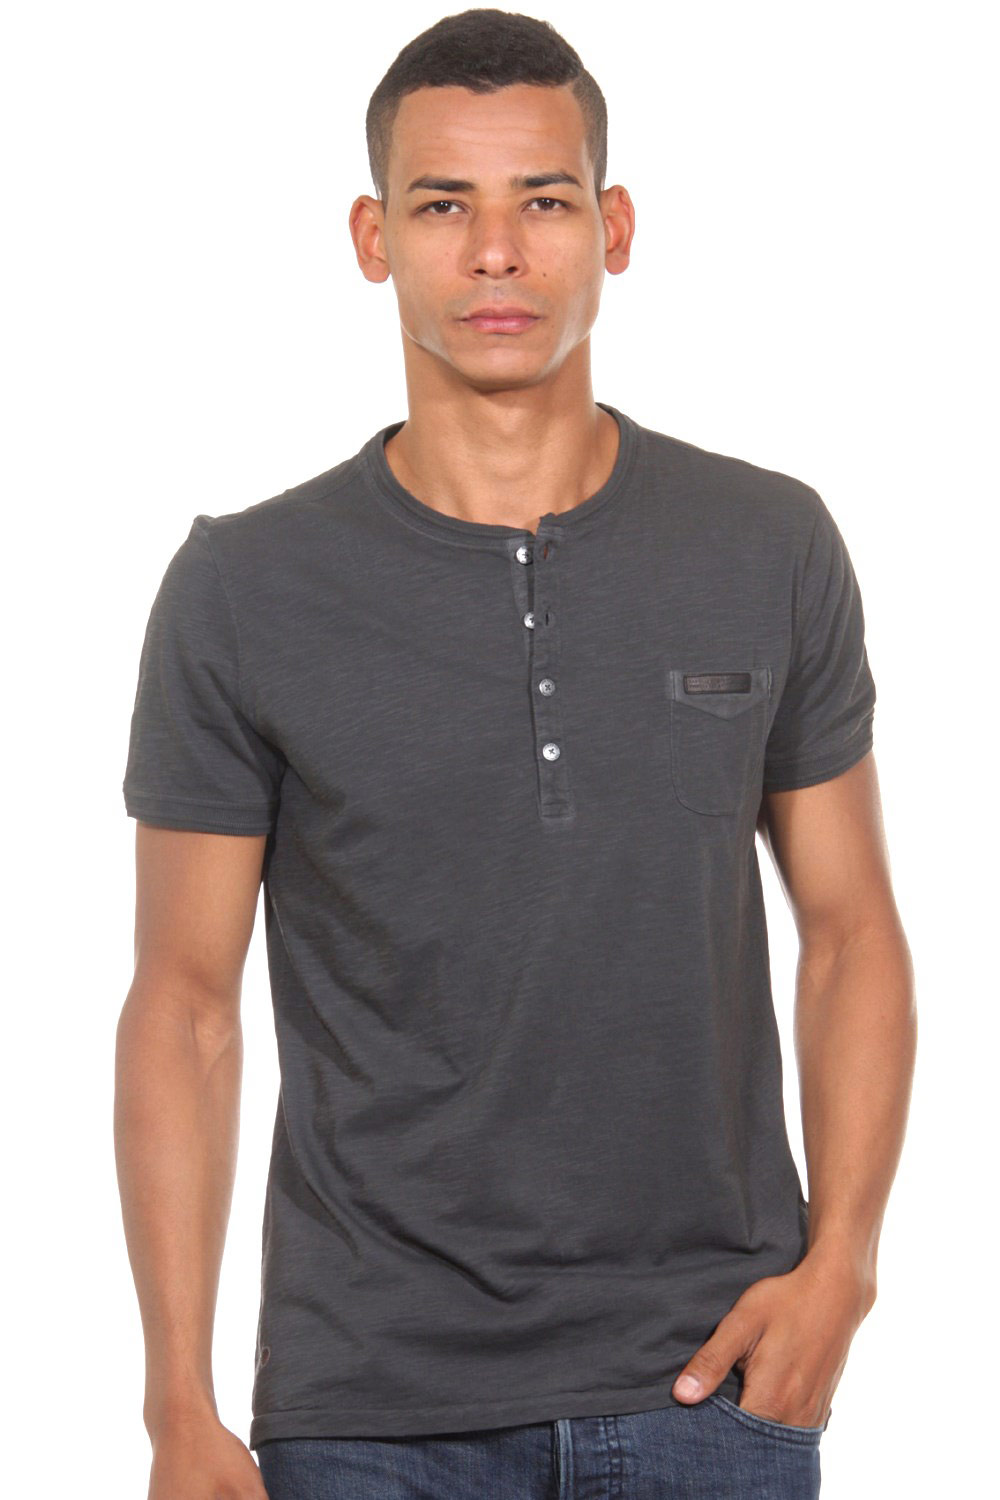 tom tailor polo team henley t shirt slim fit. Black Bedroom Furniture Sets. Home Design Ideas